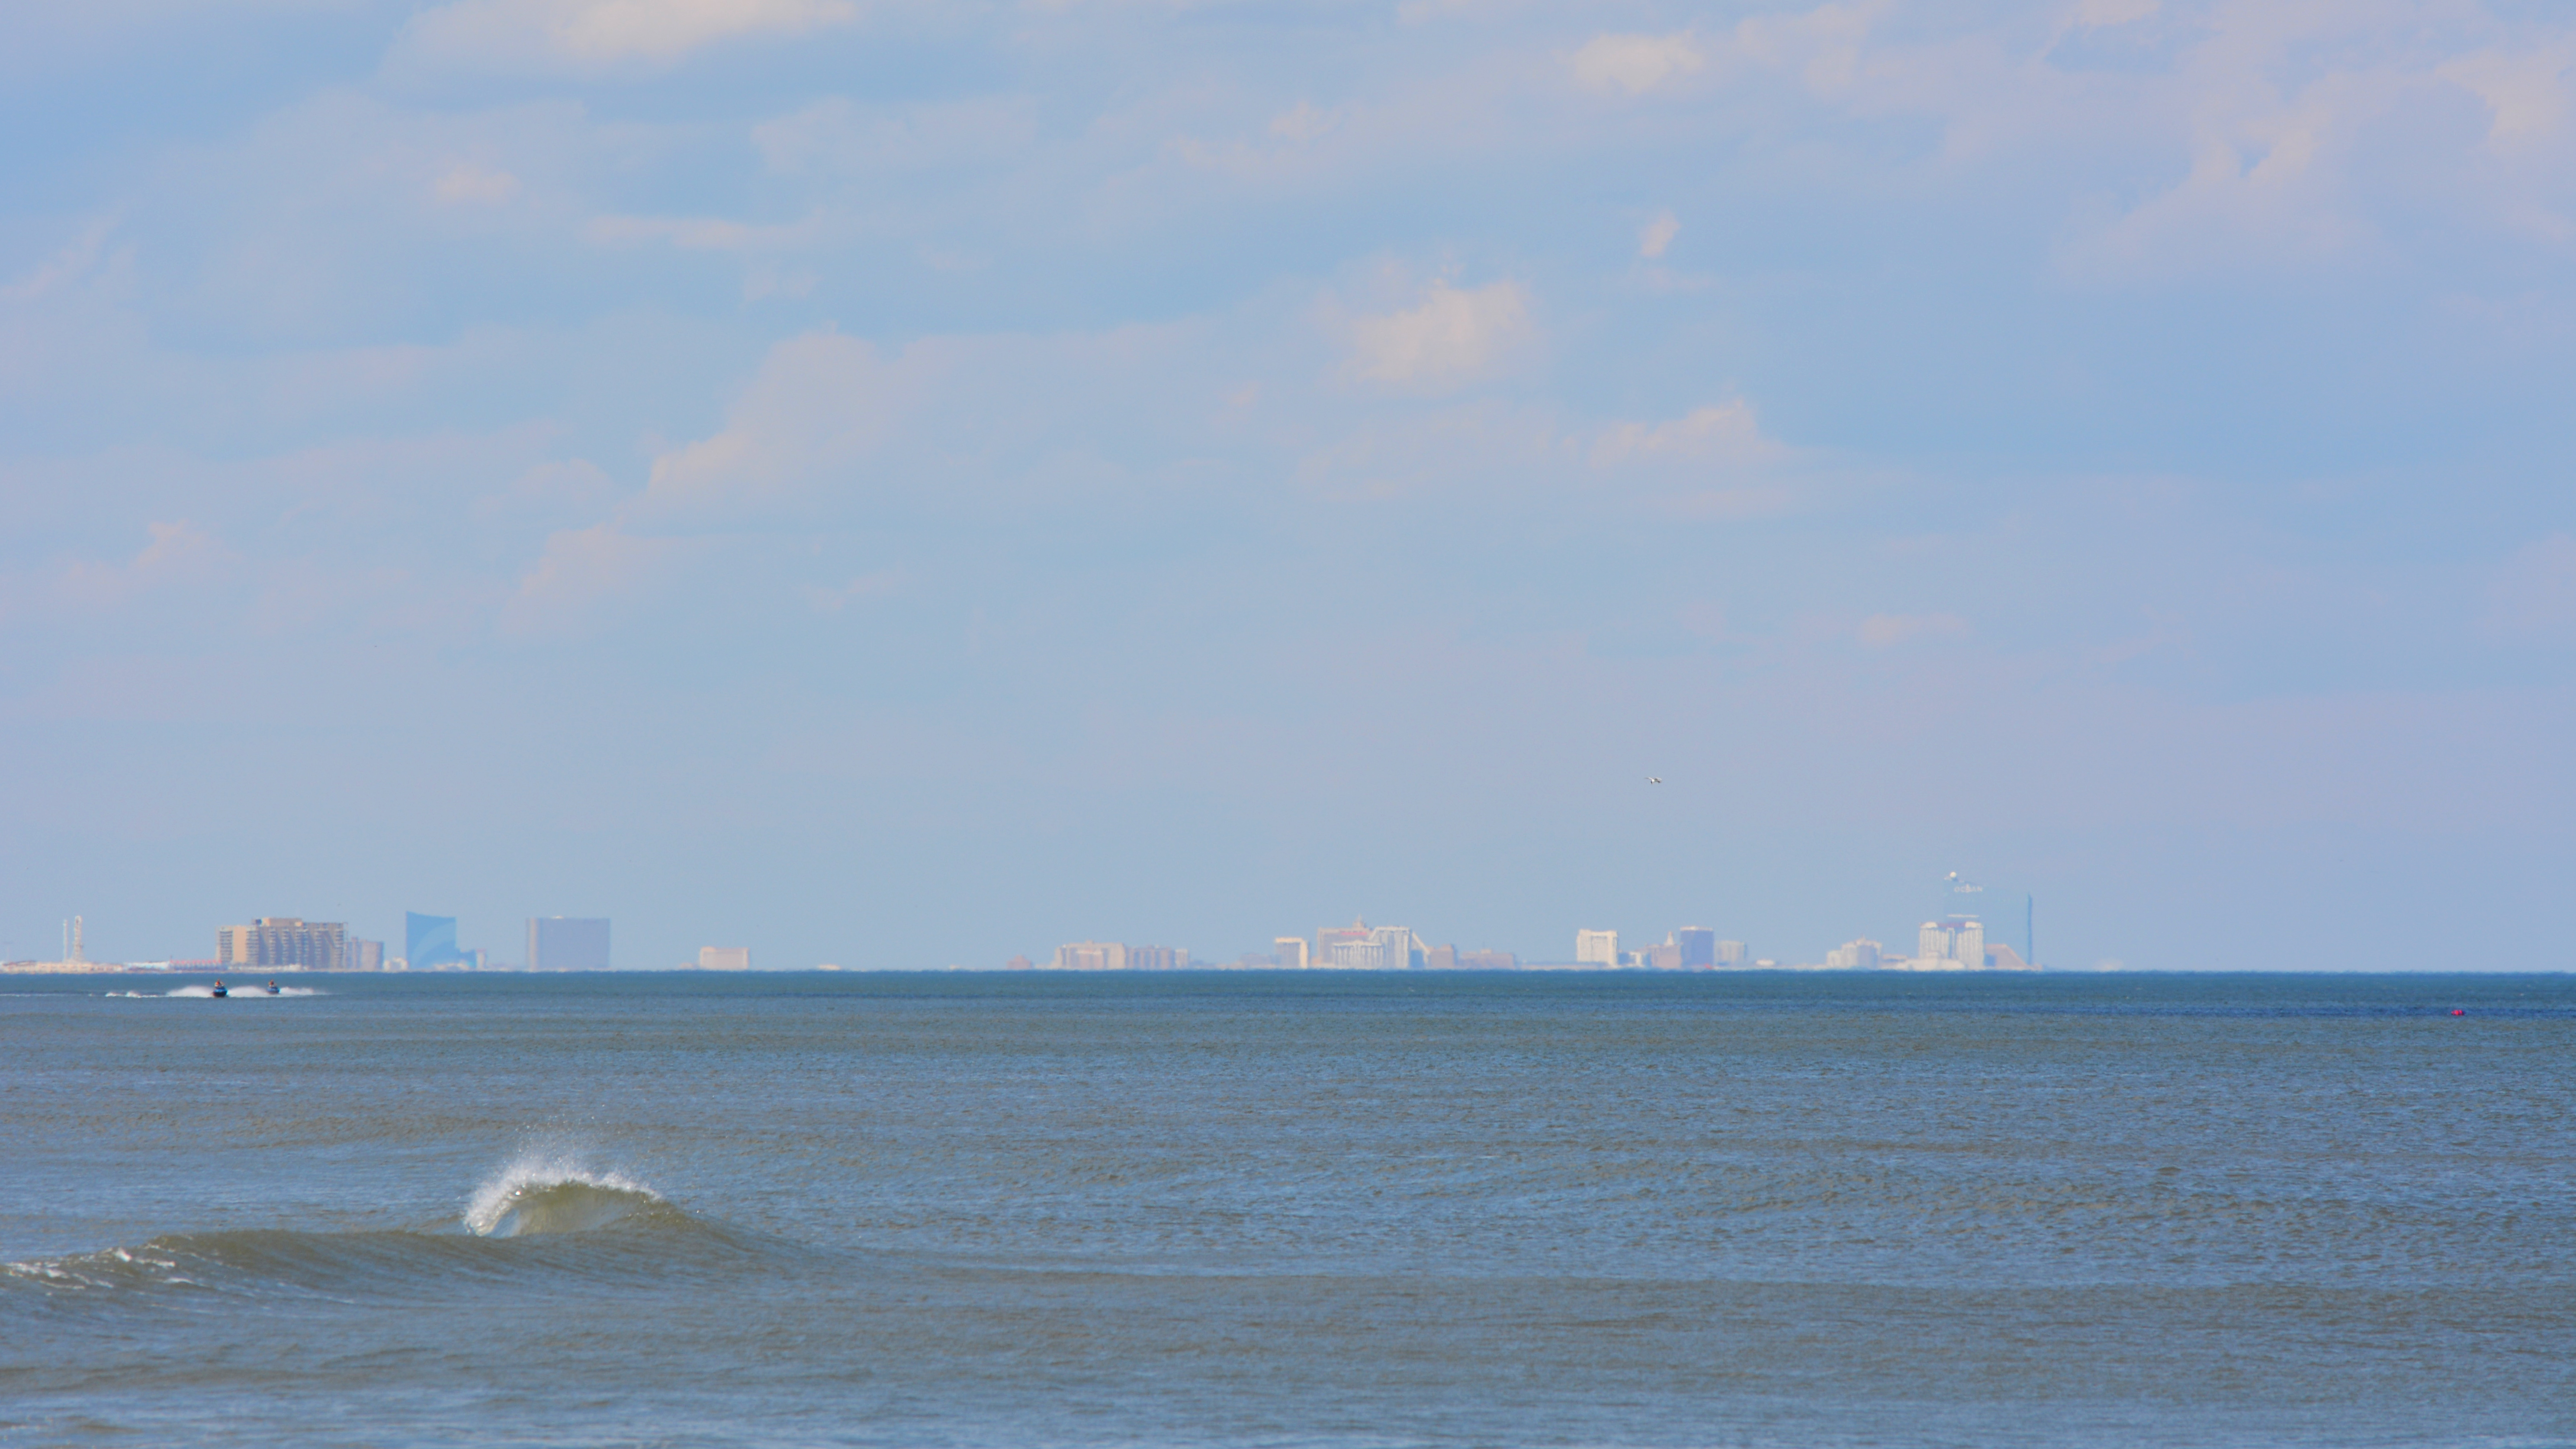 The view of the Atlantic City skyline